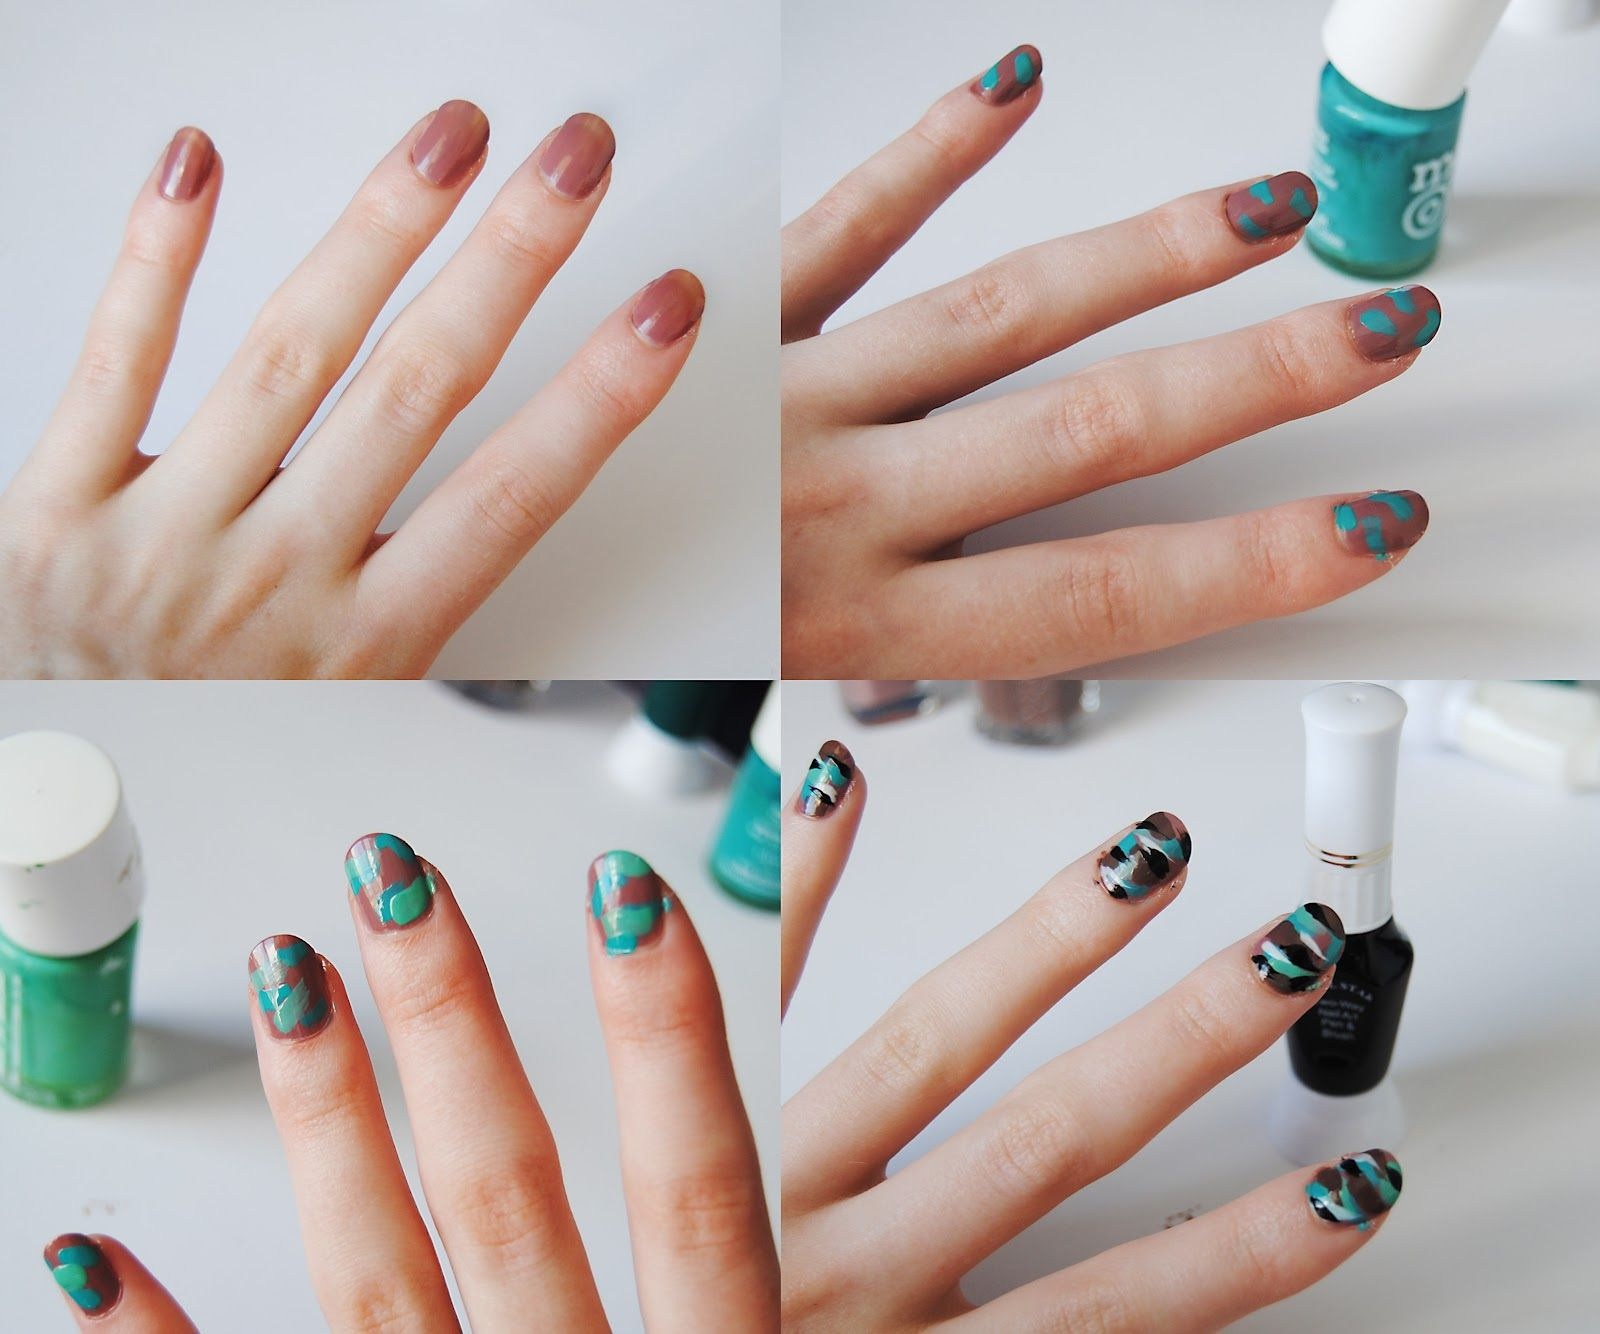 This fashion is mine diy camo nails nails pinterest camo nails pleasing nice looking diy nail designs solutioingenieria Image collections